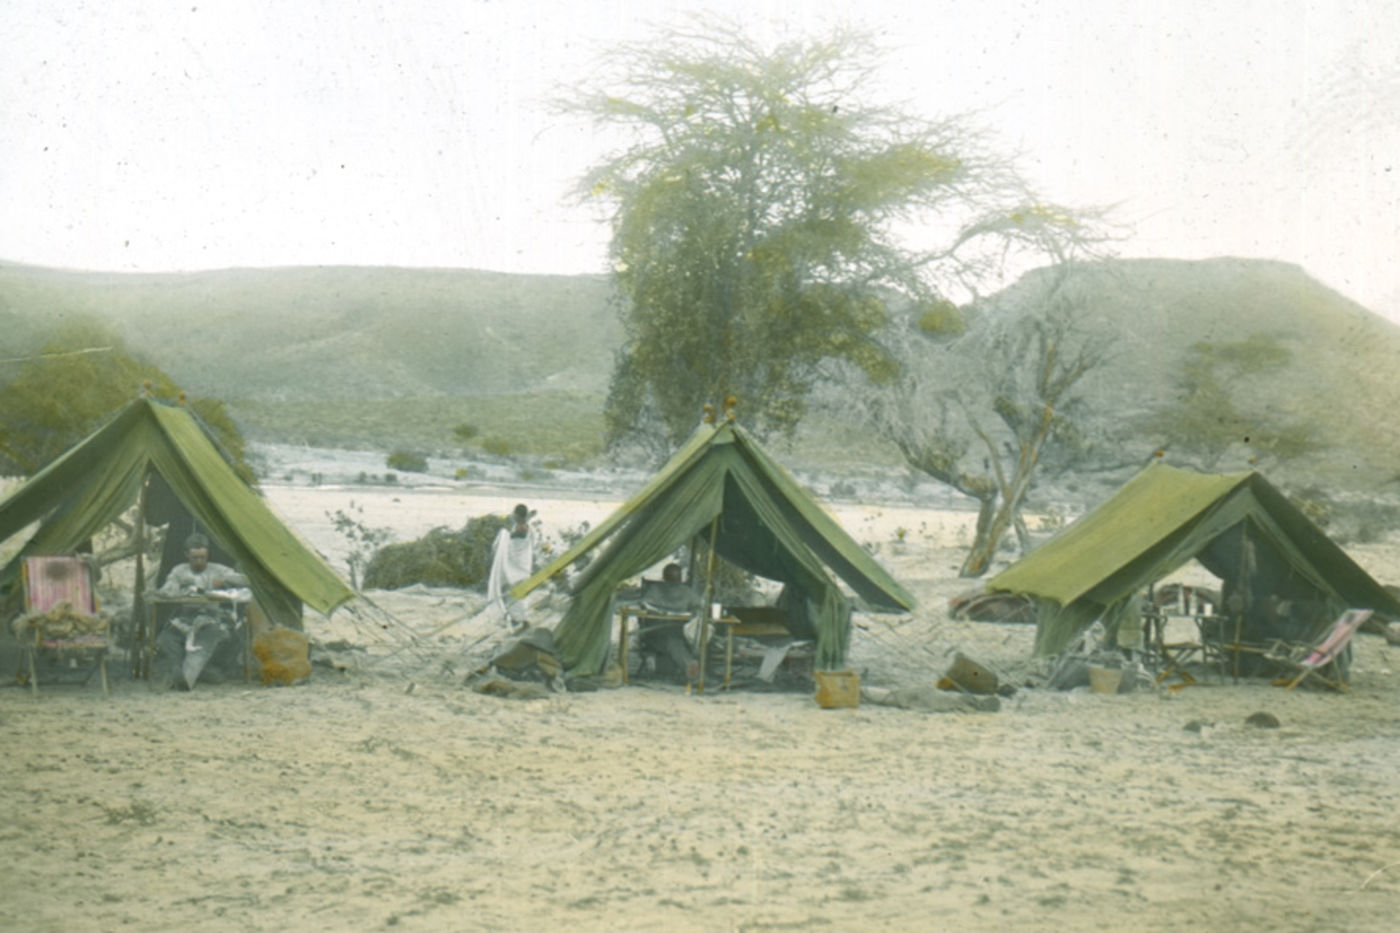 A colored photograph with black border, showing three tents in a row. The foreground is sandy, and the background has a few sparse trees and mountains.